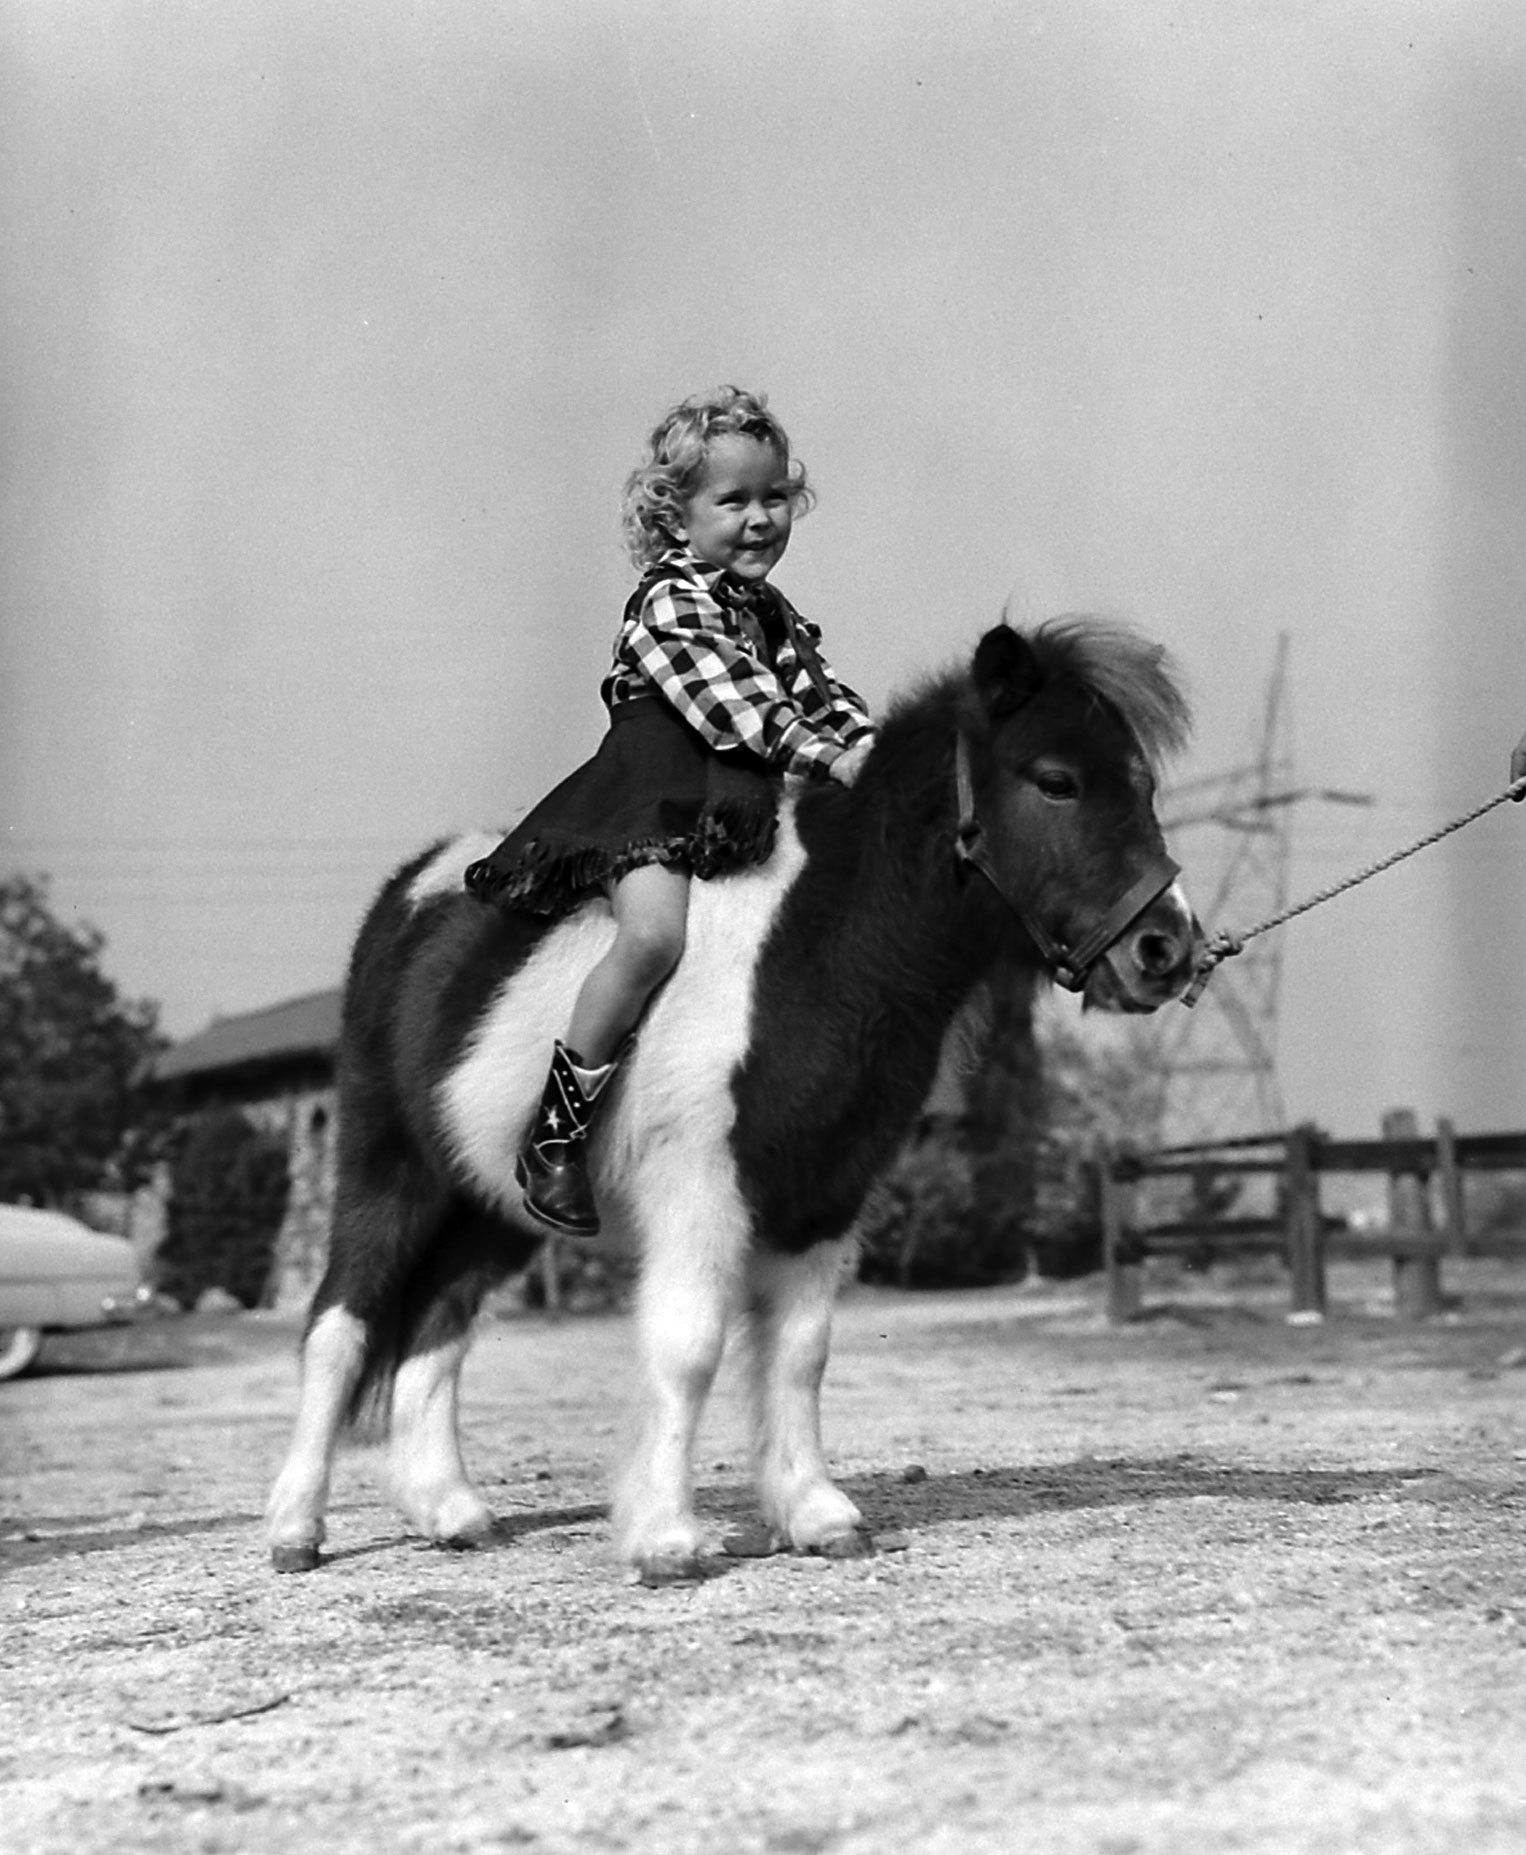 Cynthia riding Cedric.